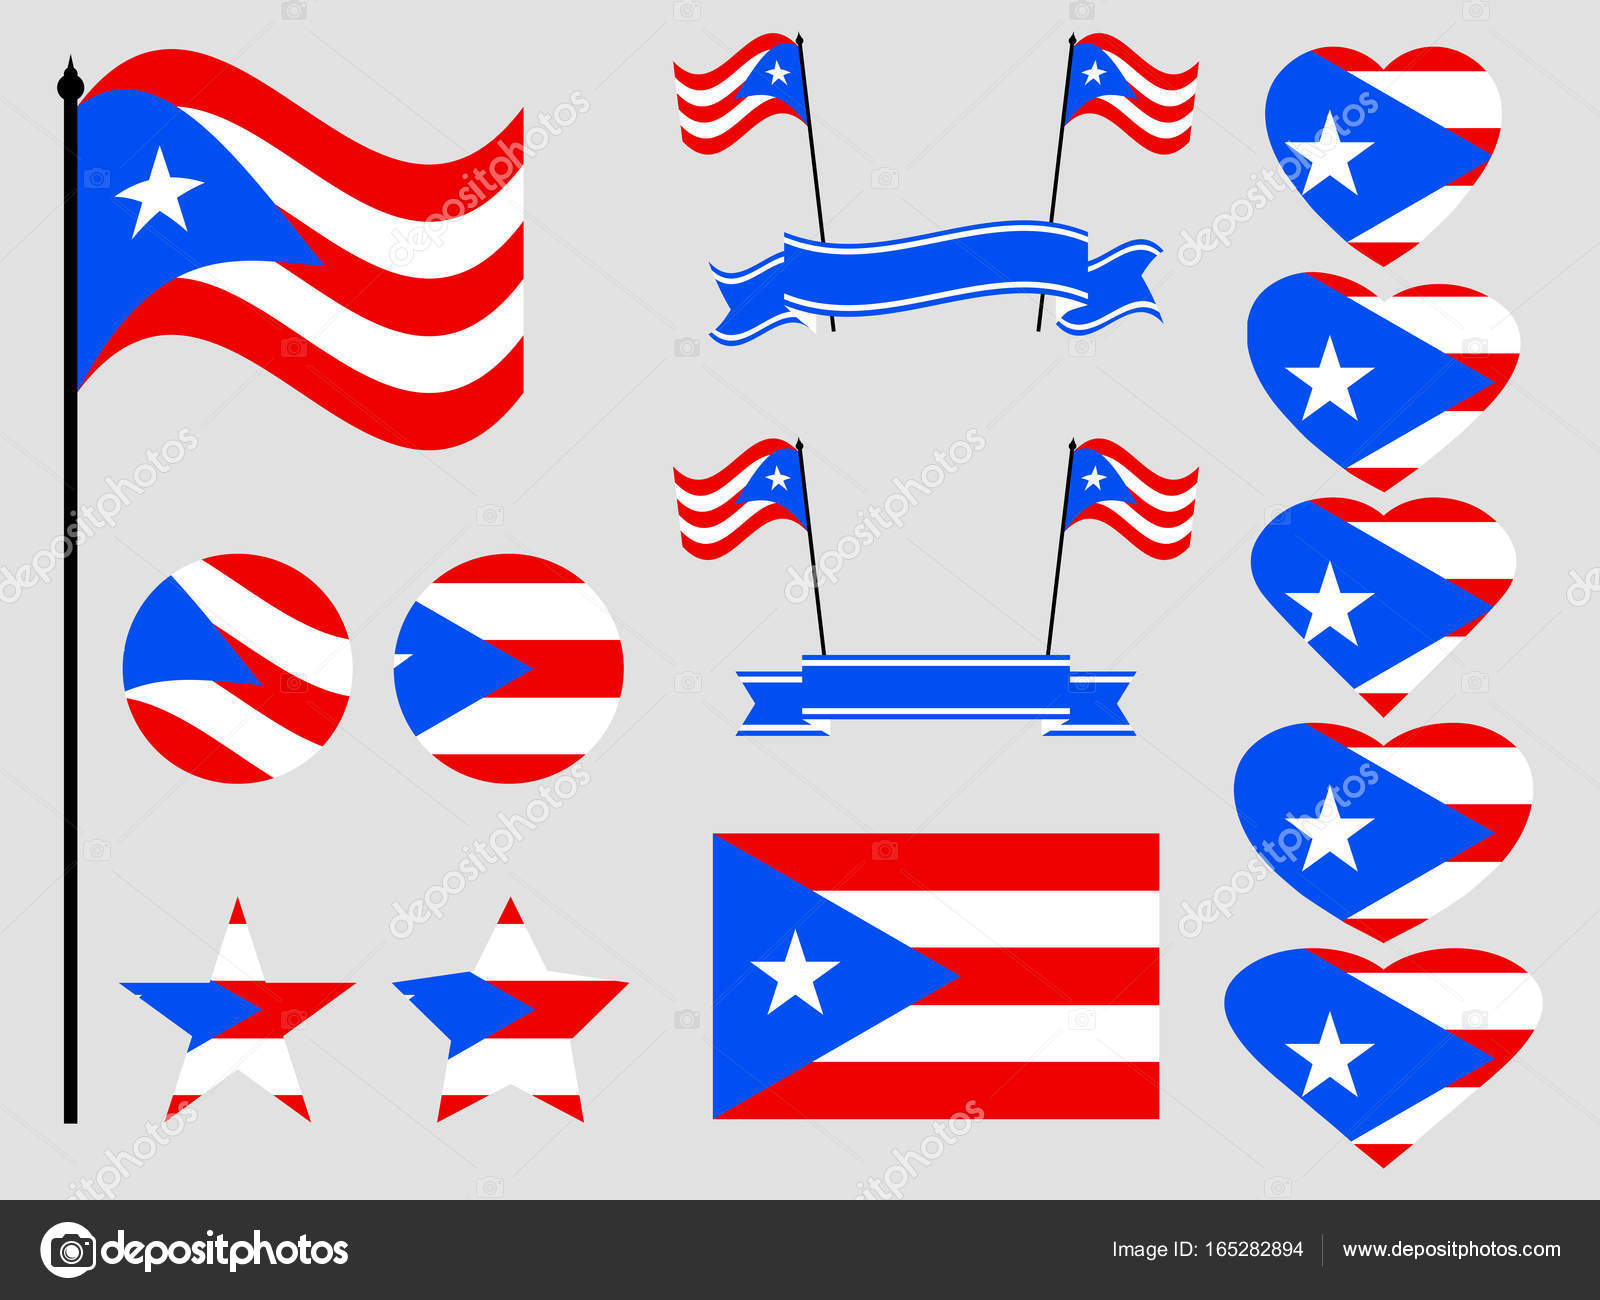 Puerto rico flag set symbols flag in heart vector illustration puerto rico flag set symbols flag in heart vector illustration stock vector biocorpaavc Choice Image